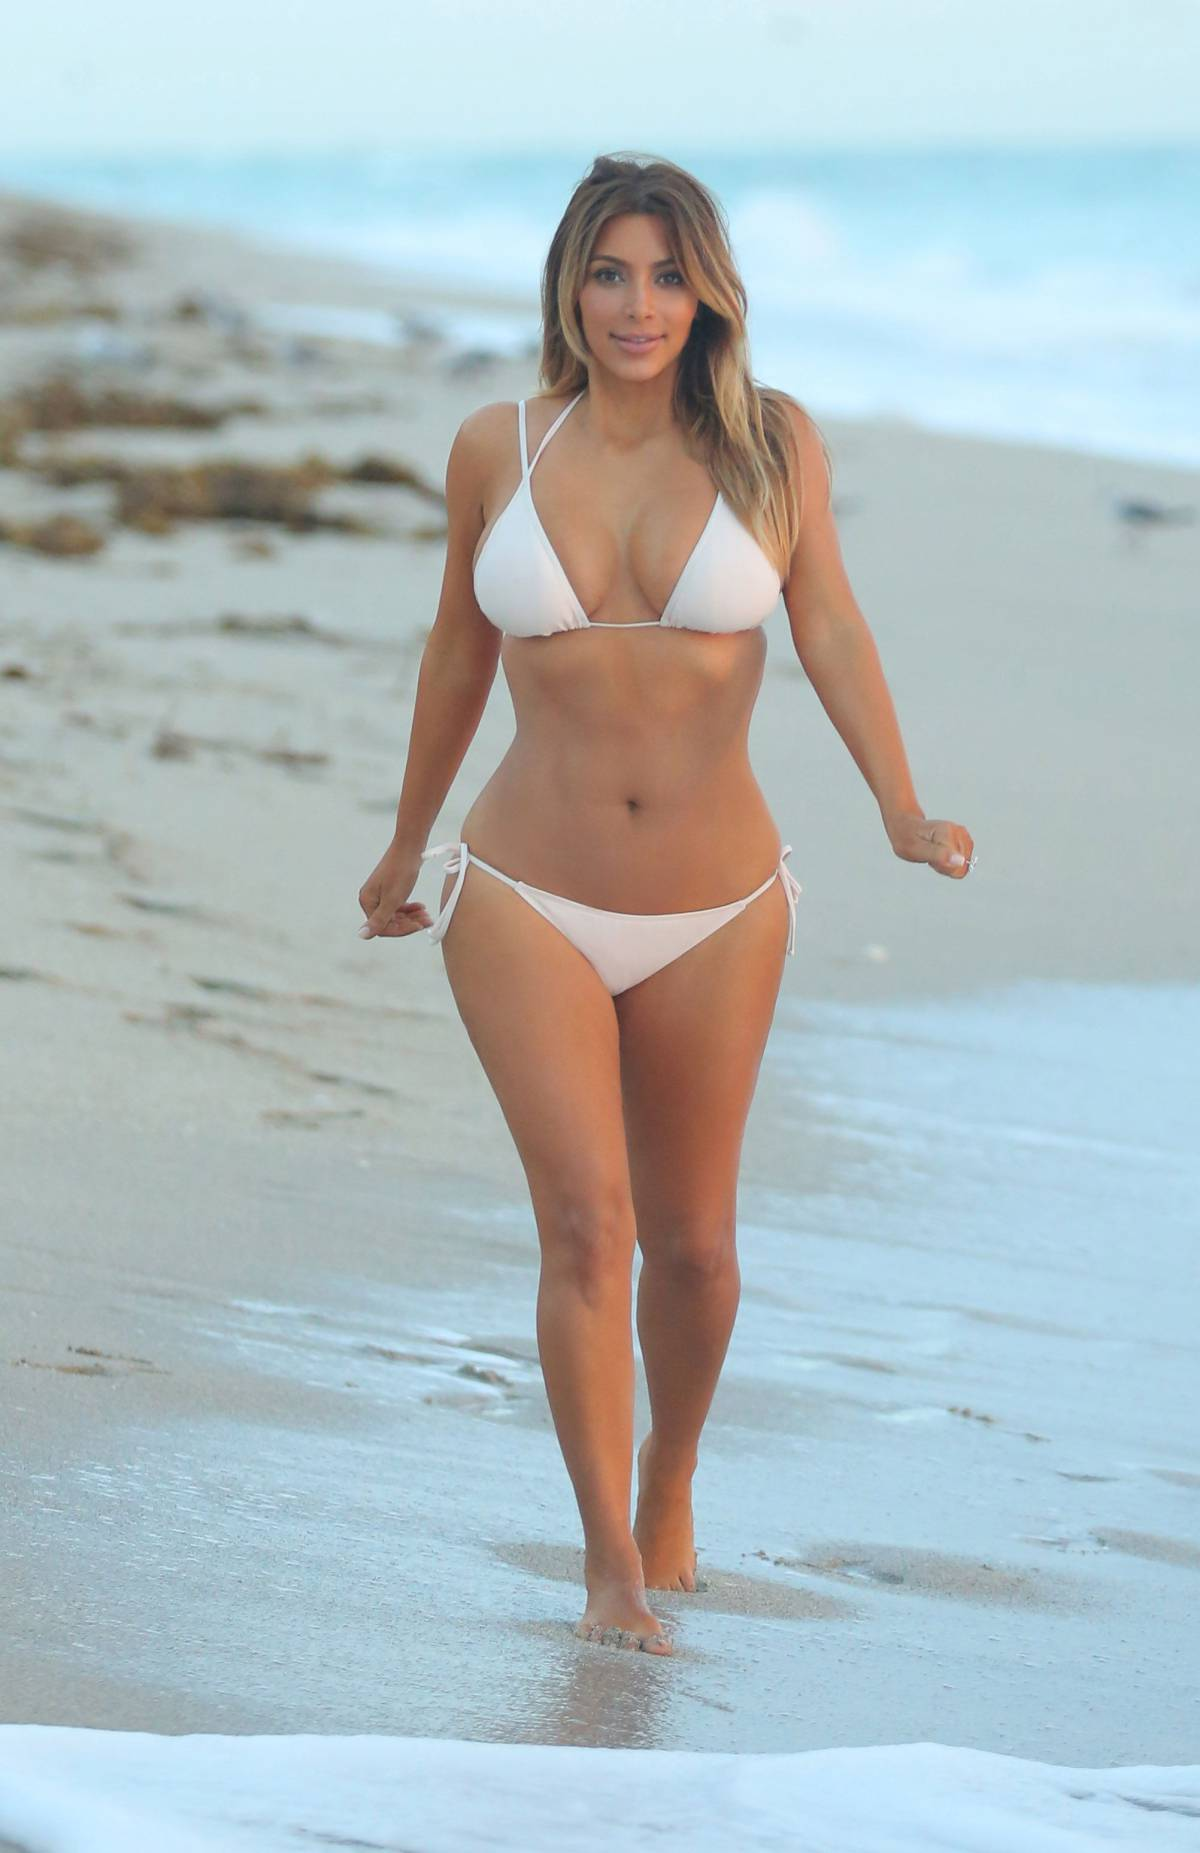 Kim kardashian bikini pics 2013 miami 05 gotceleb for Best online photo gallery